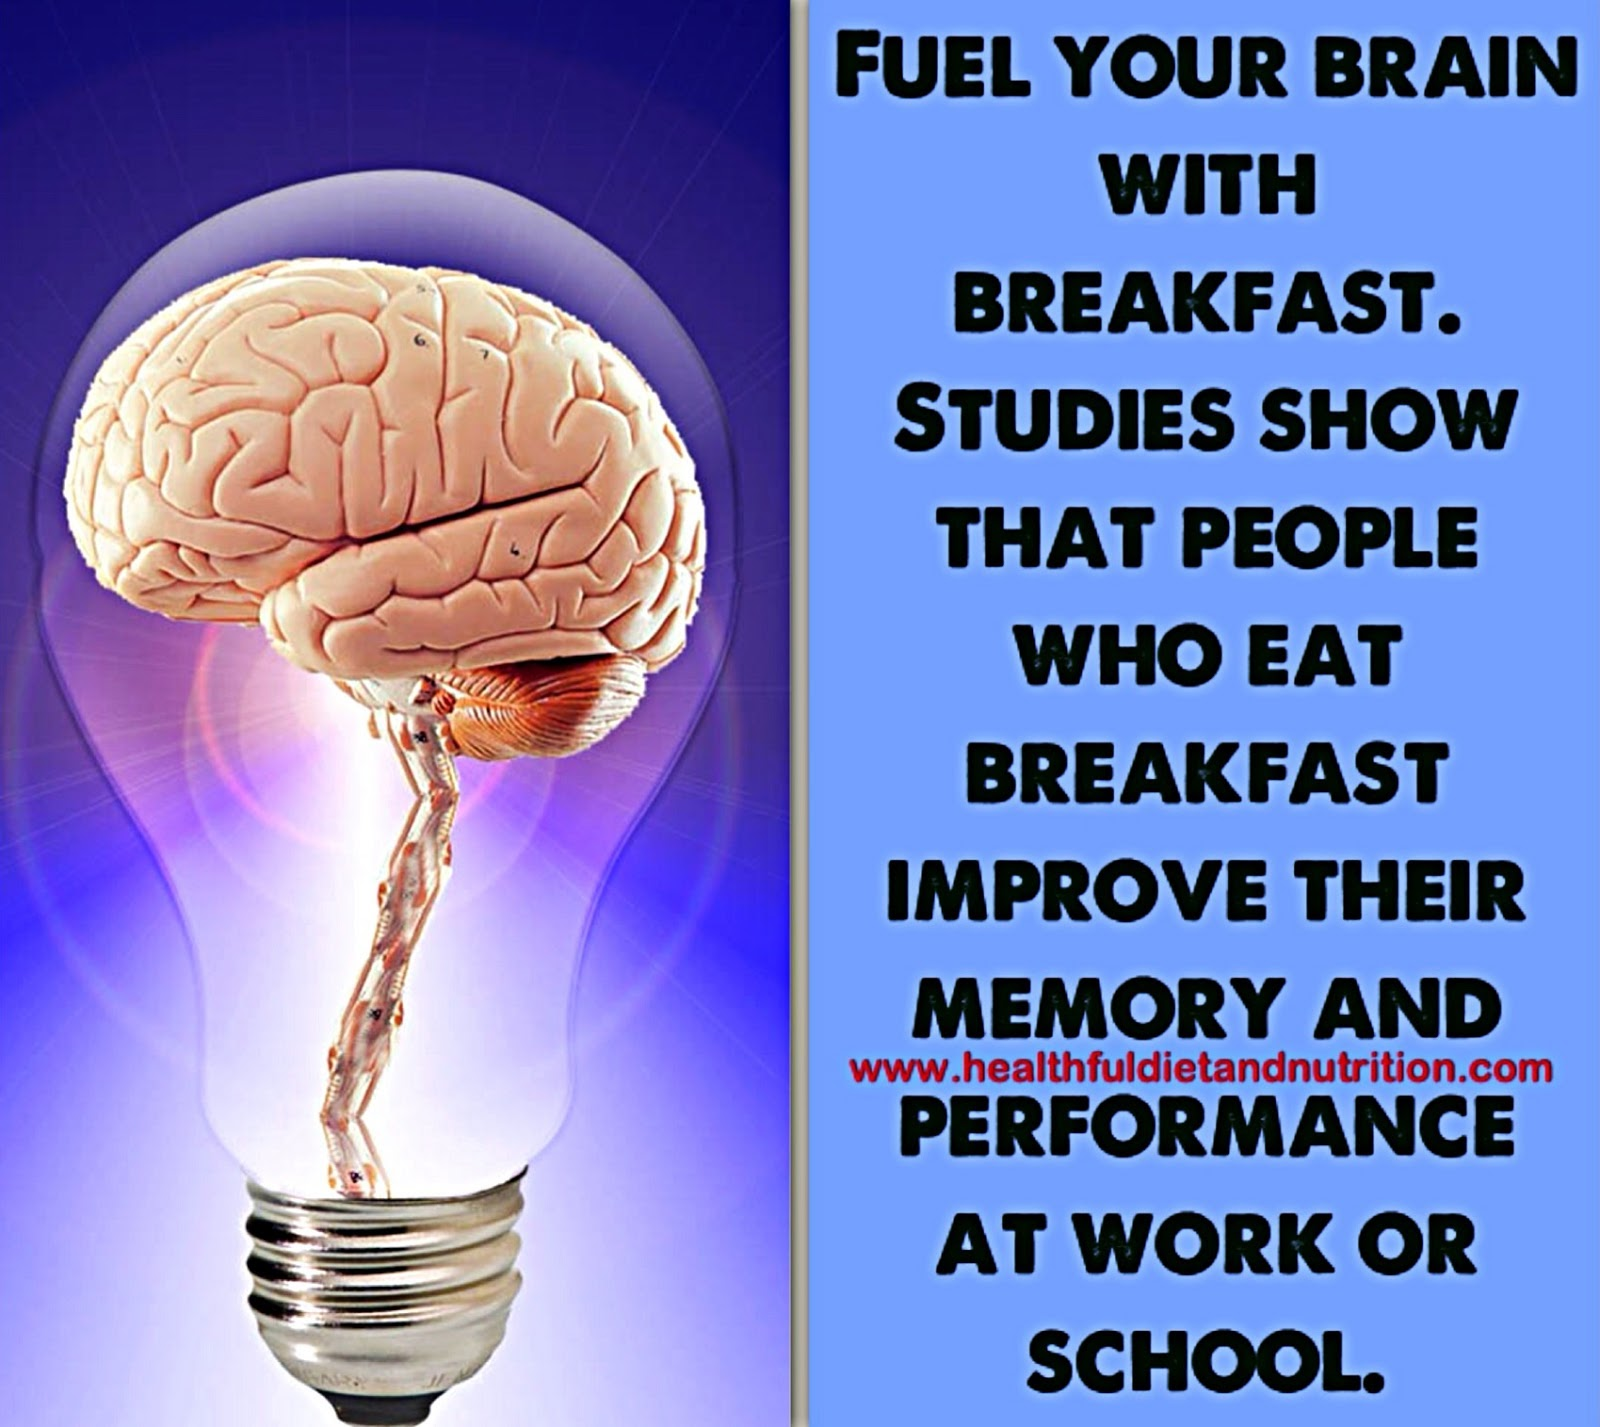 Fuel Your Brain With Breakfast